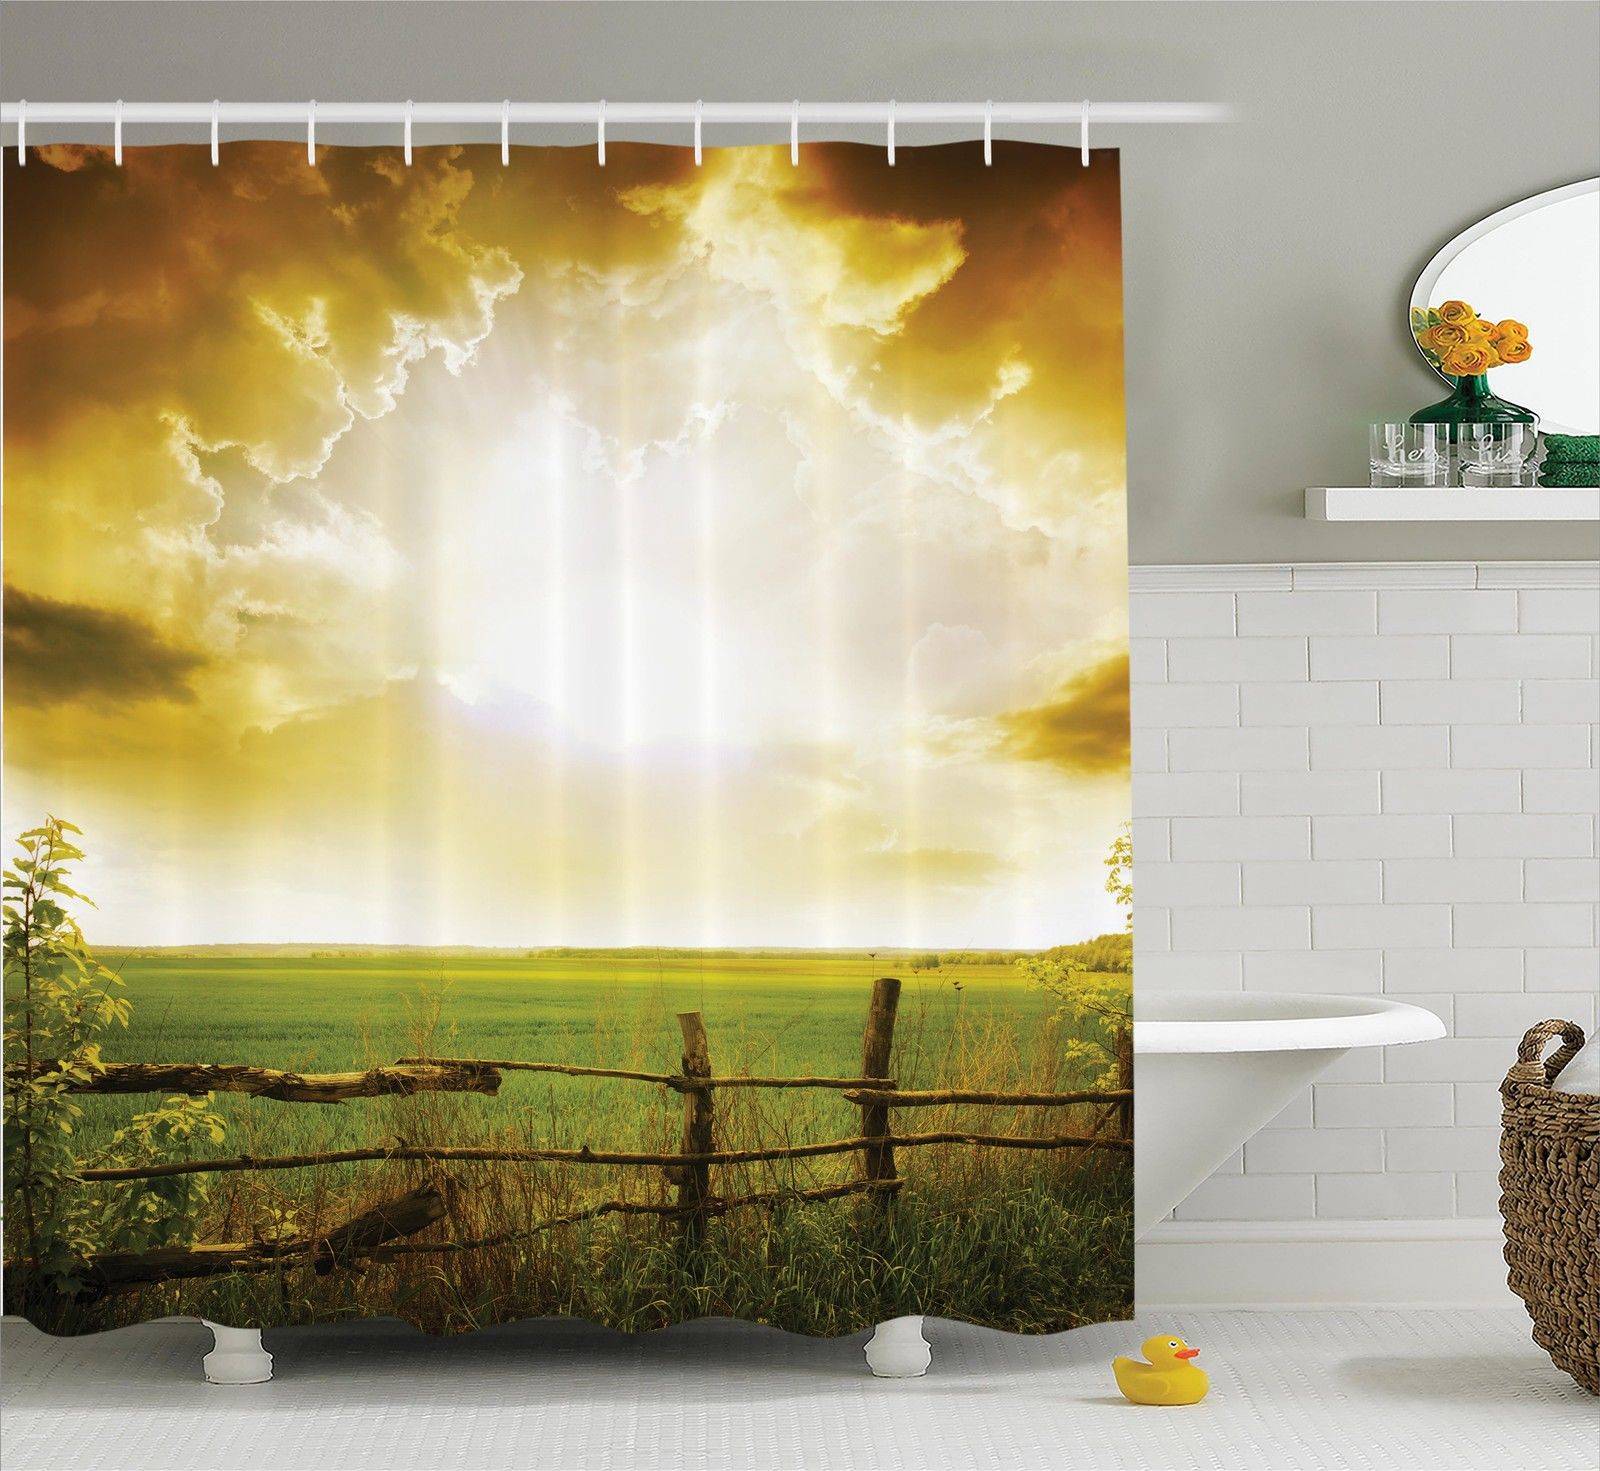 Farm House Decor Shower Curtain Set, Sunset On The Field At Summer Wooden Hedge Springtime Meadow Morning View Print, Bathroom Accessories, 69W X 70L Inches, By Ambesonne